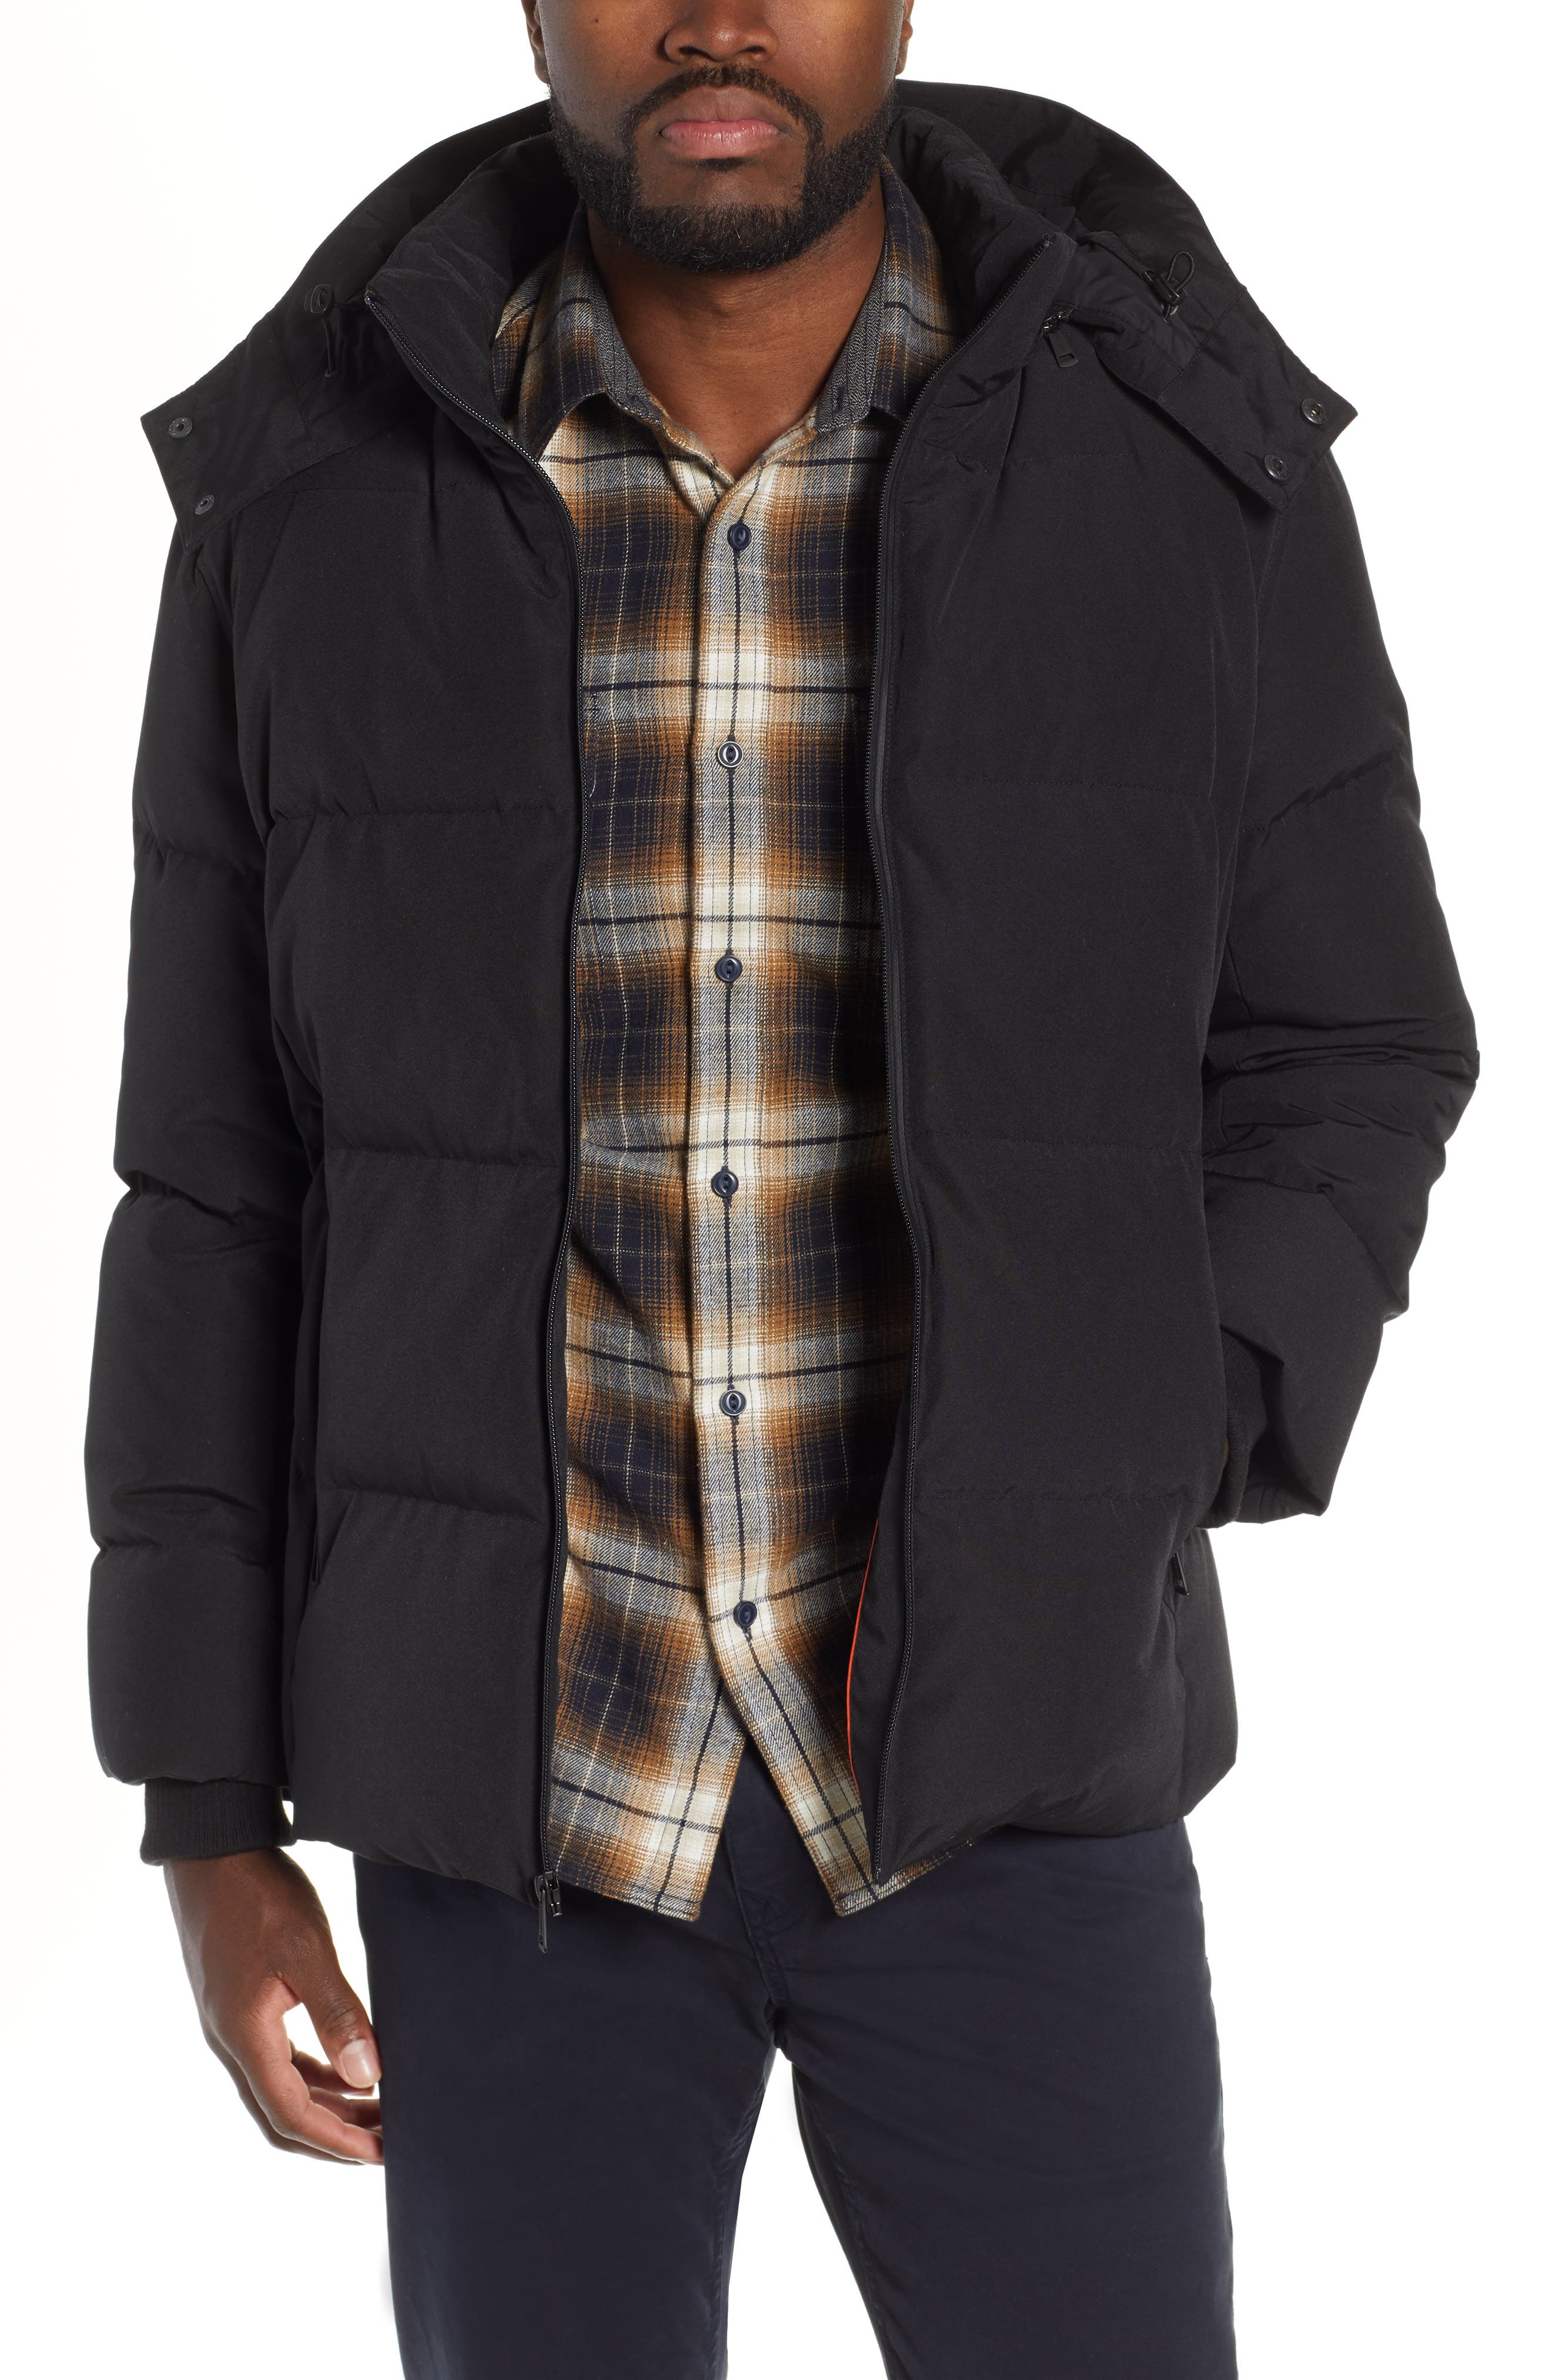 COLE HAAN SIGNATURE Hooded Puffer Jacket, Main, color, 001